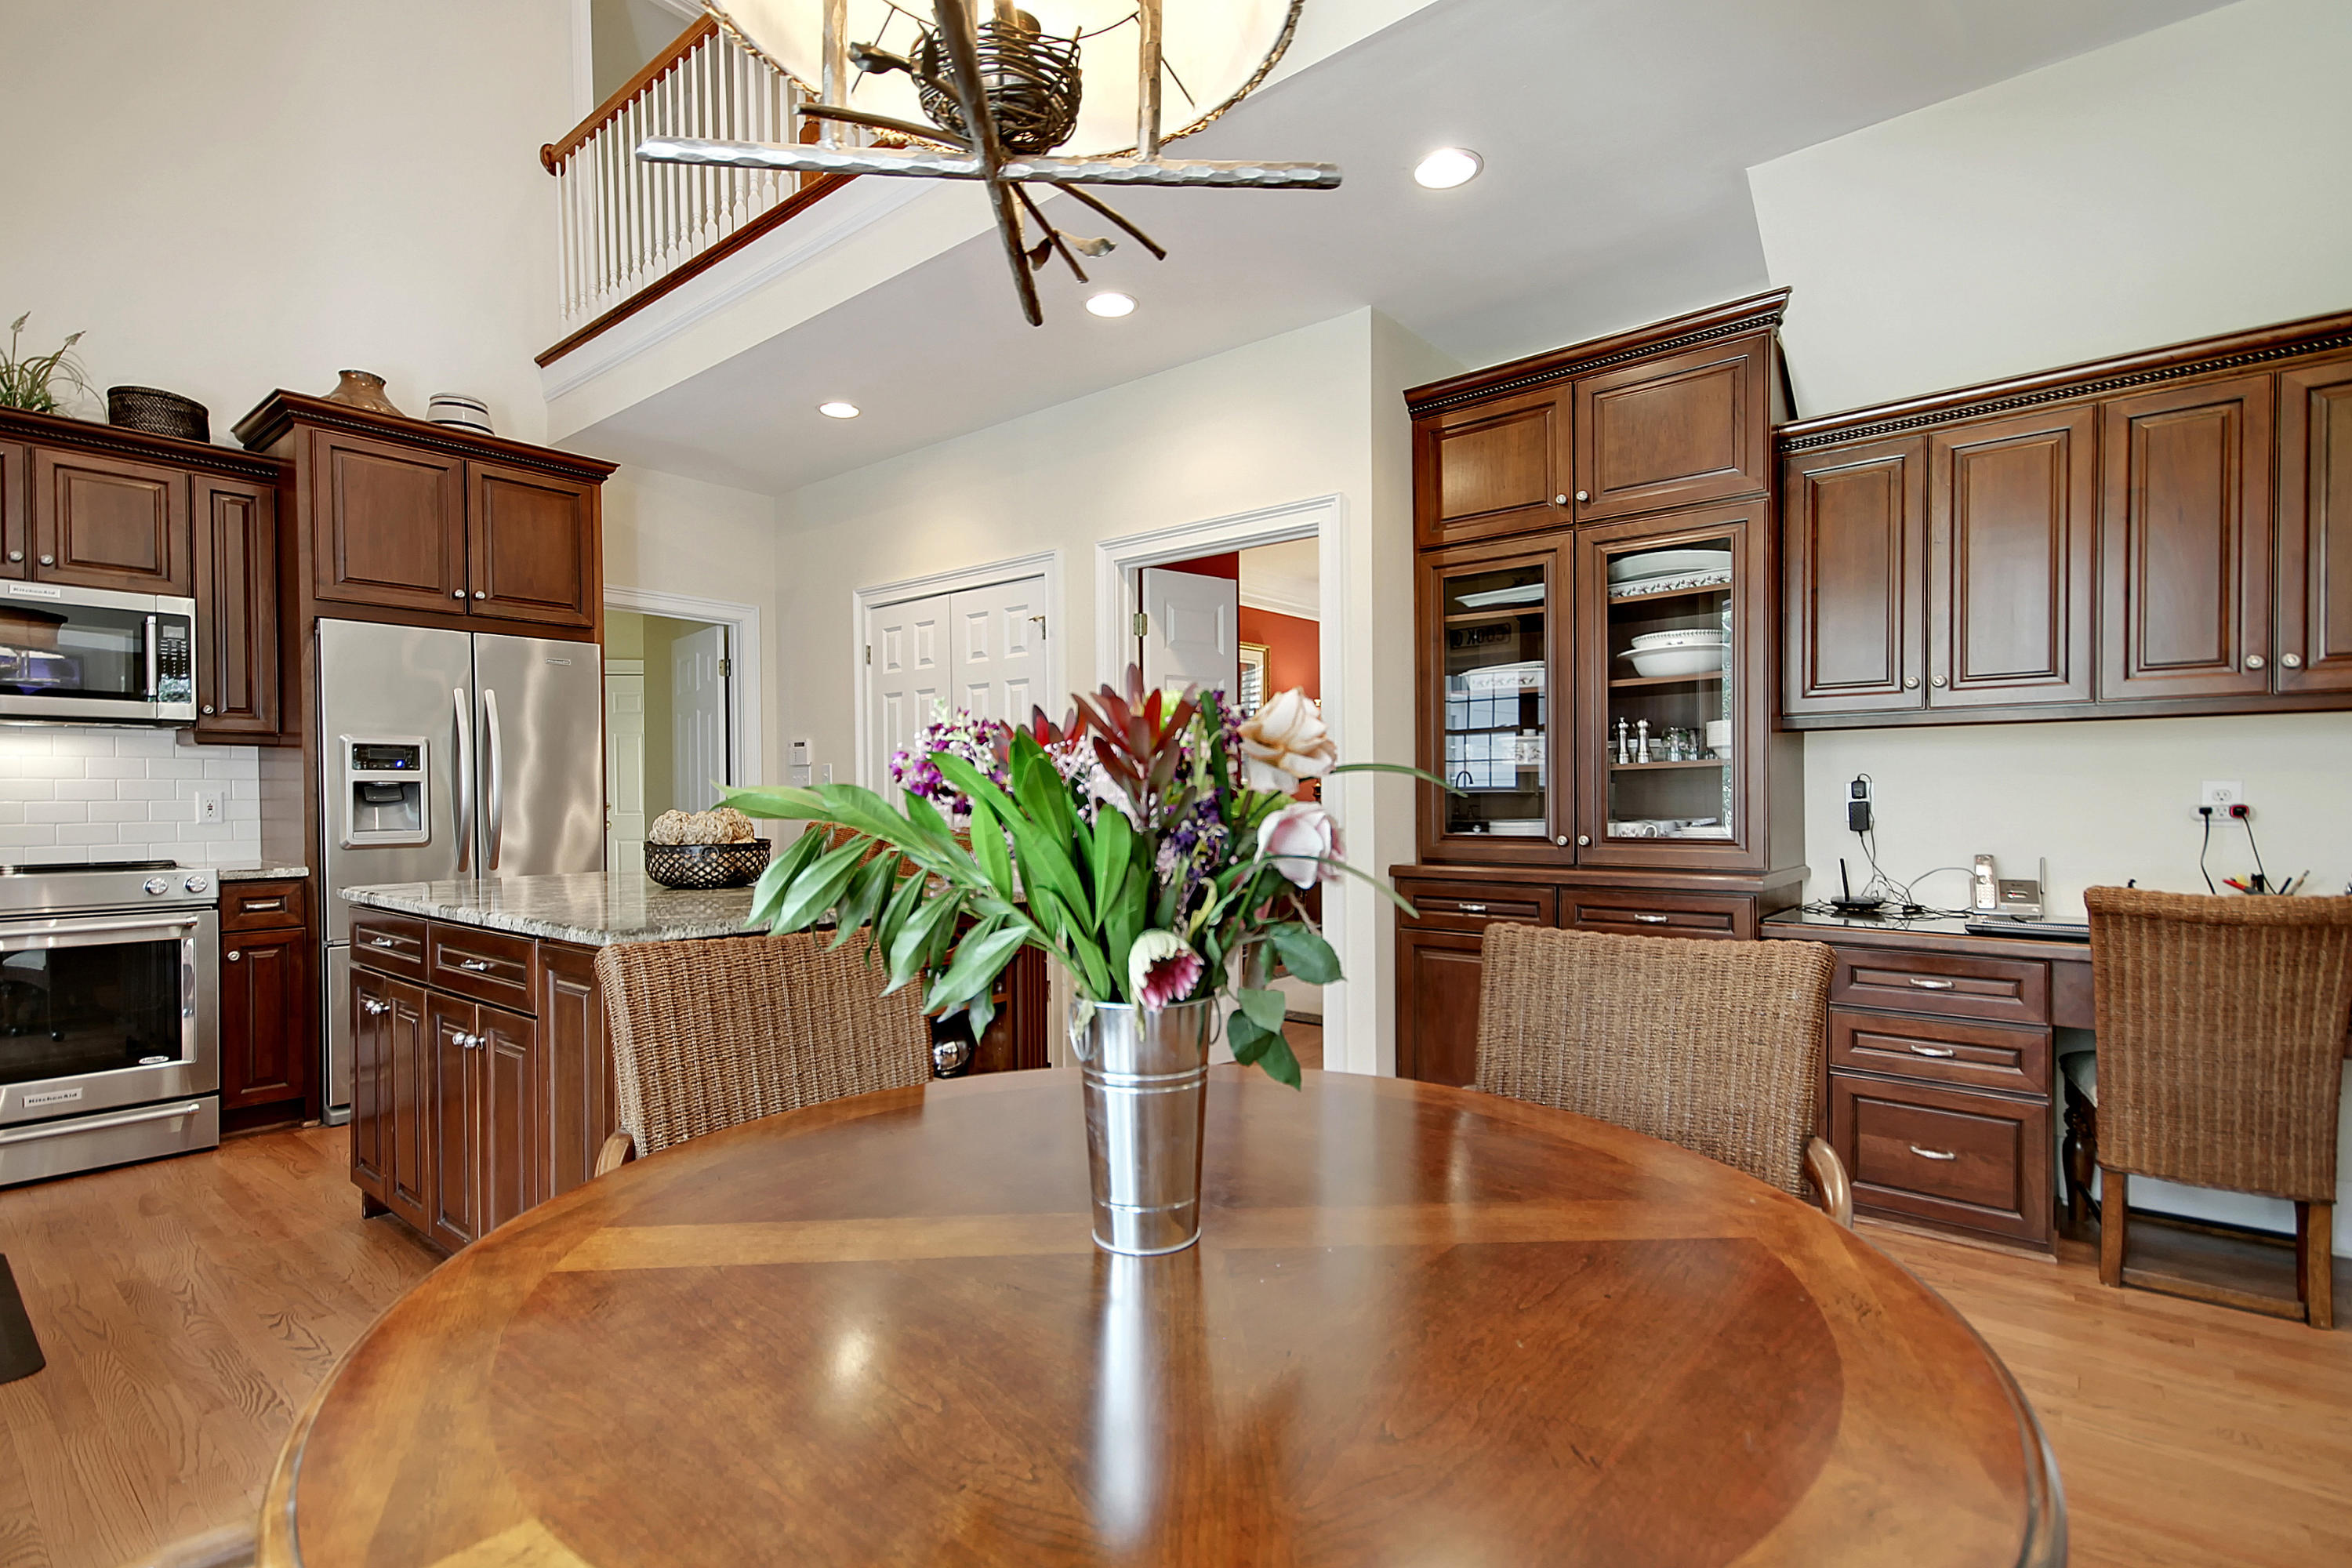 Dunes West Homes For Sale - 1829 Shell Ring, Mount Pleasant, SC - 34